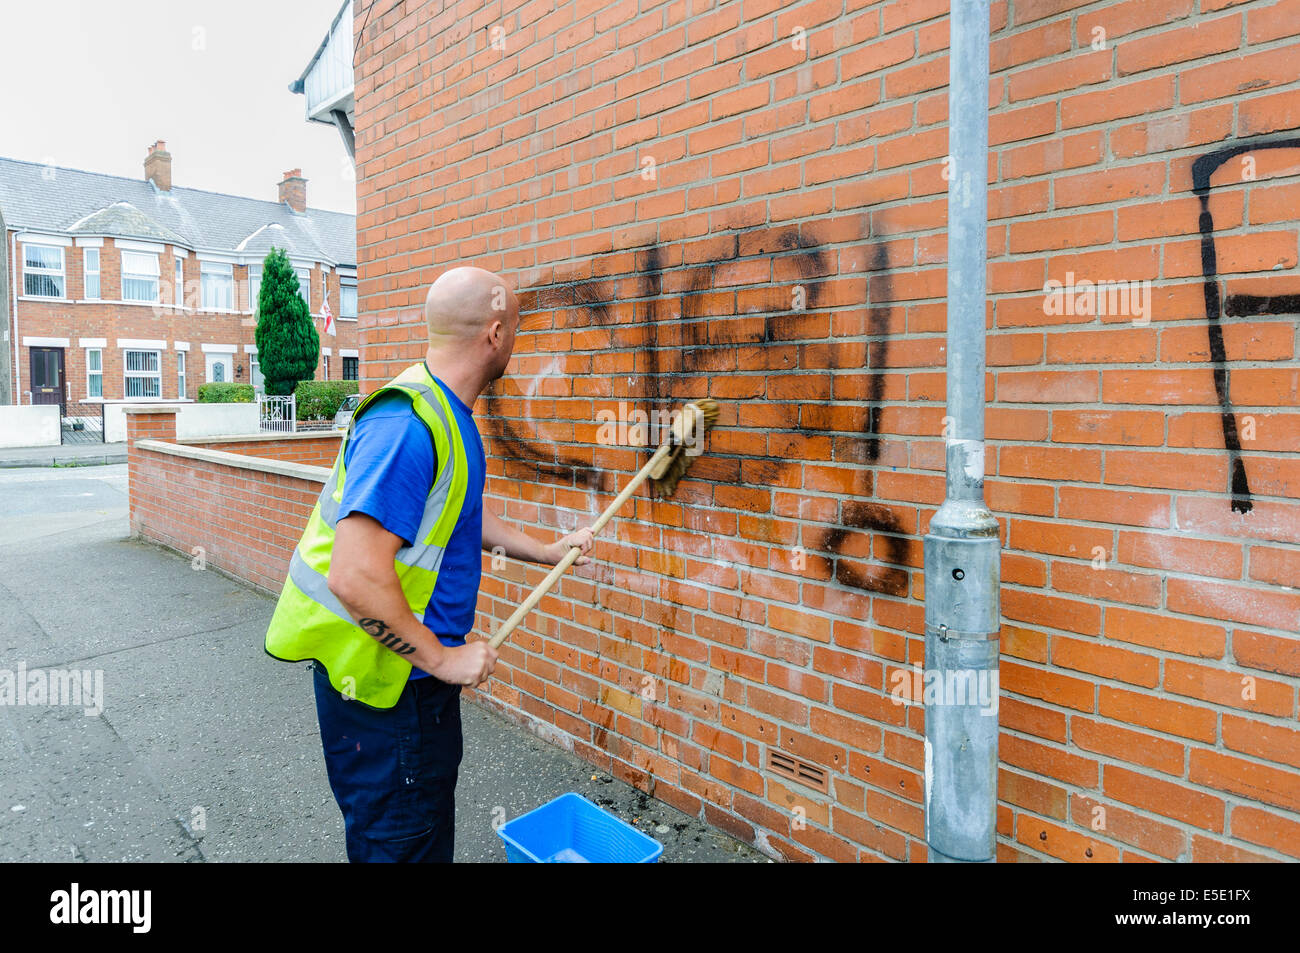 Belfast, Northern Ireland. 29th July, 2014. A council worker removes graffiti saying 'C18' [Combat 18] spraypainted - Stock Image